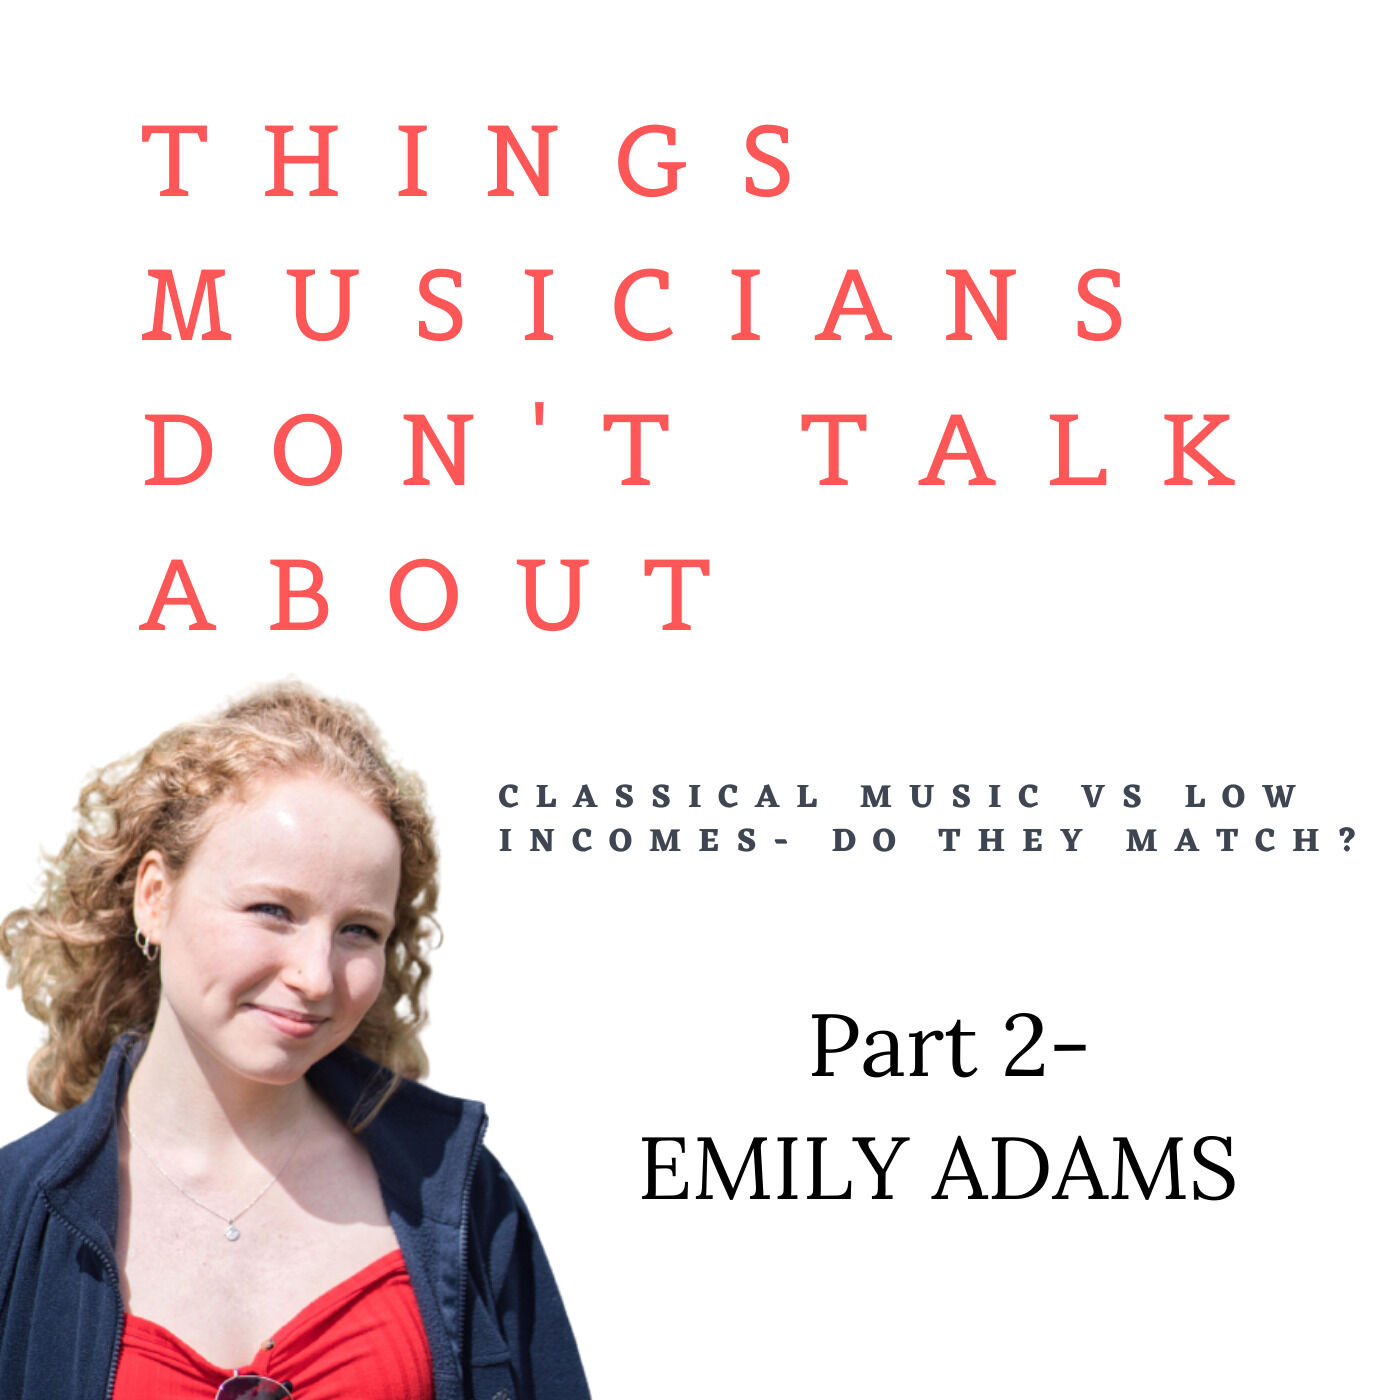 Episode 12- Emily Adams (classical music vs low incomes part 2)